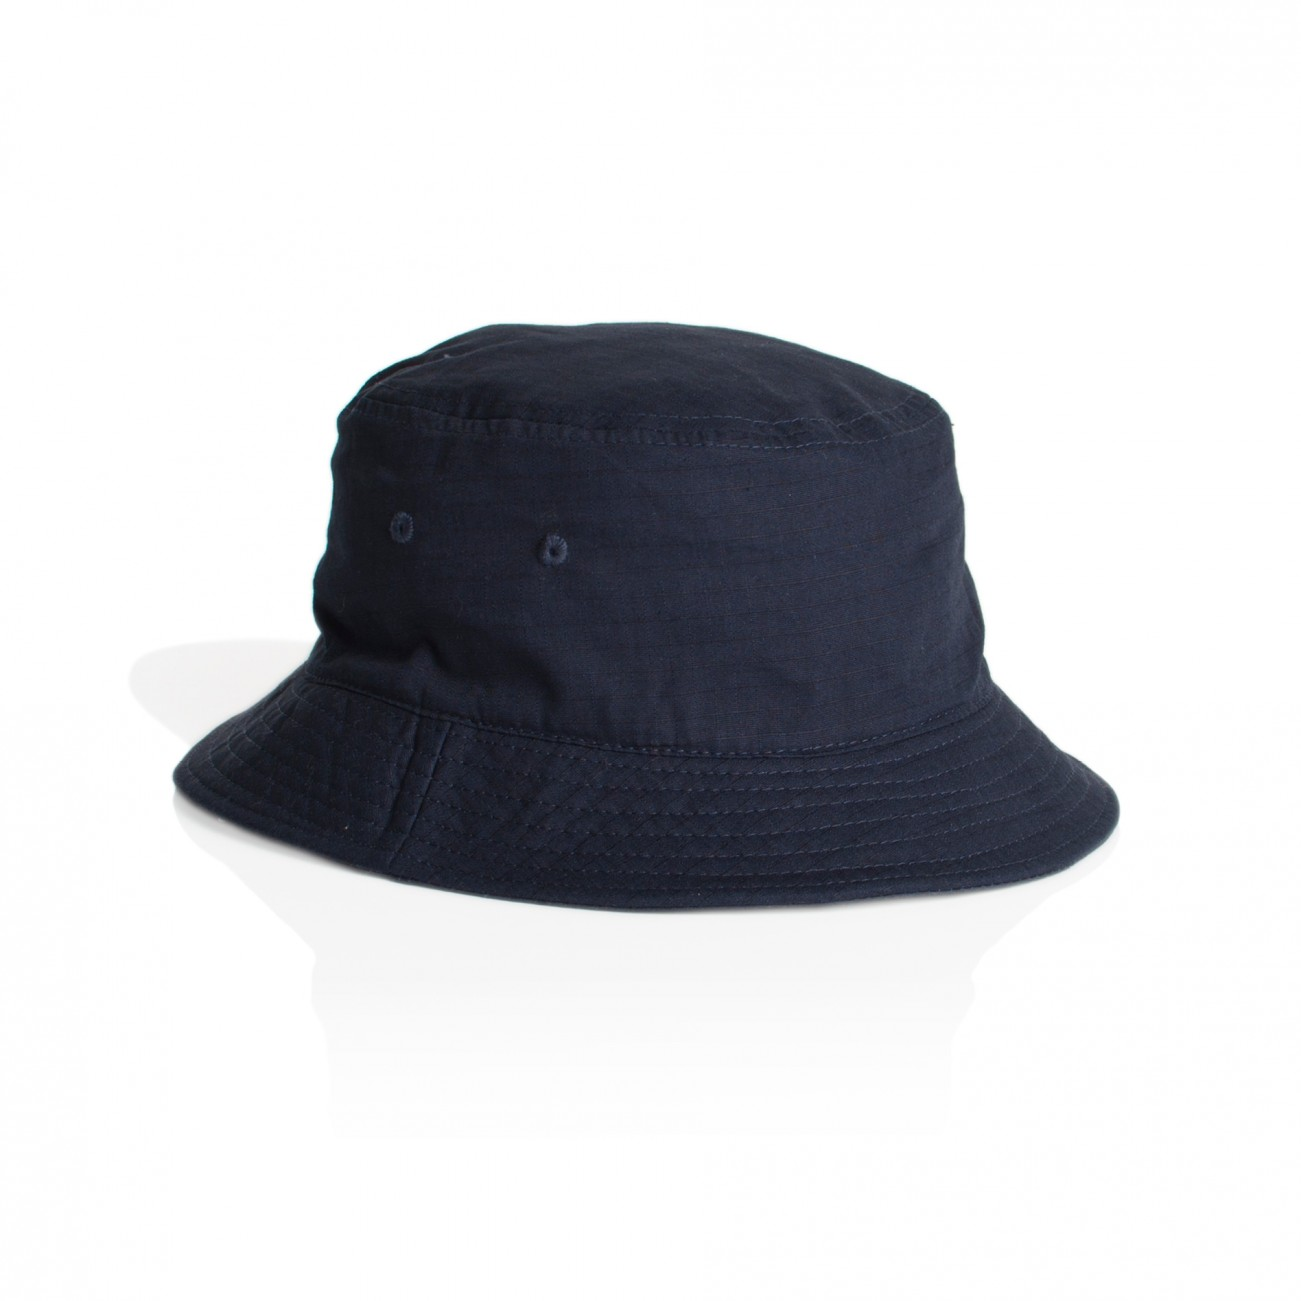 1104_bucket_hat_navy_3.jpg